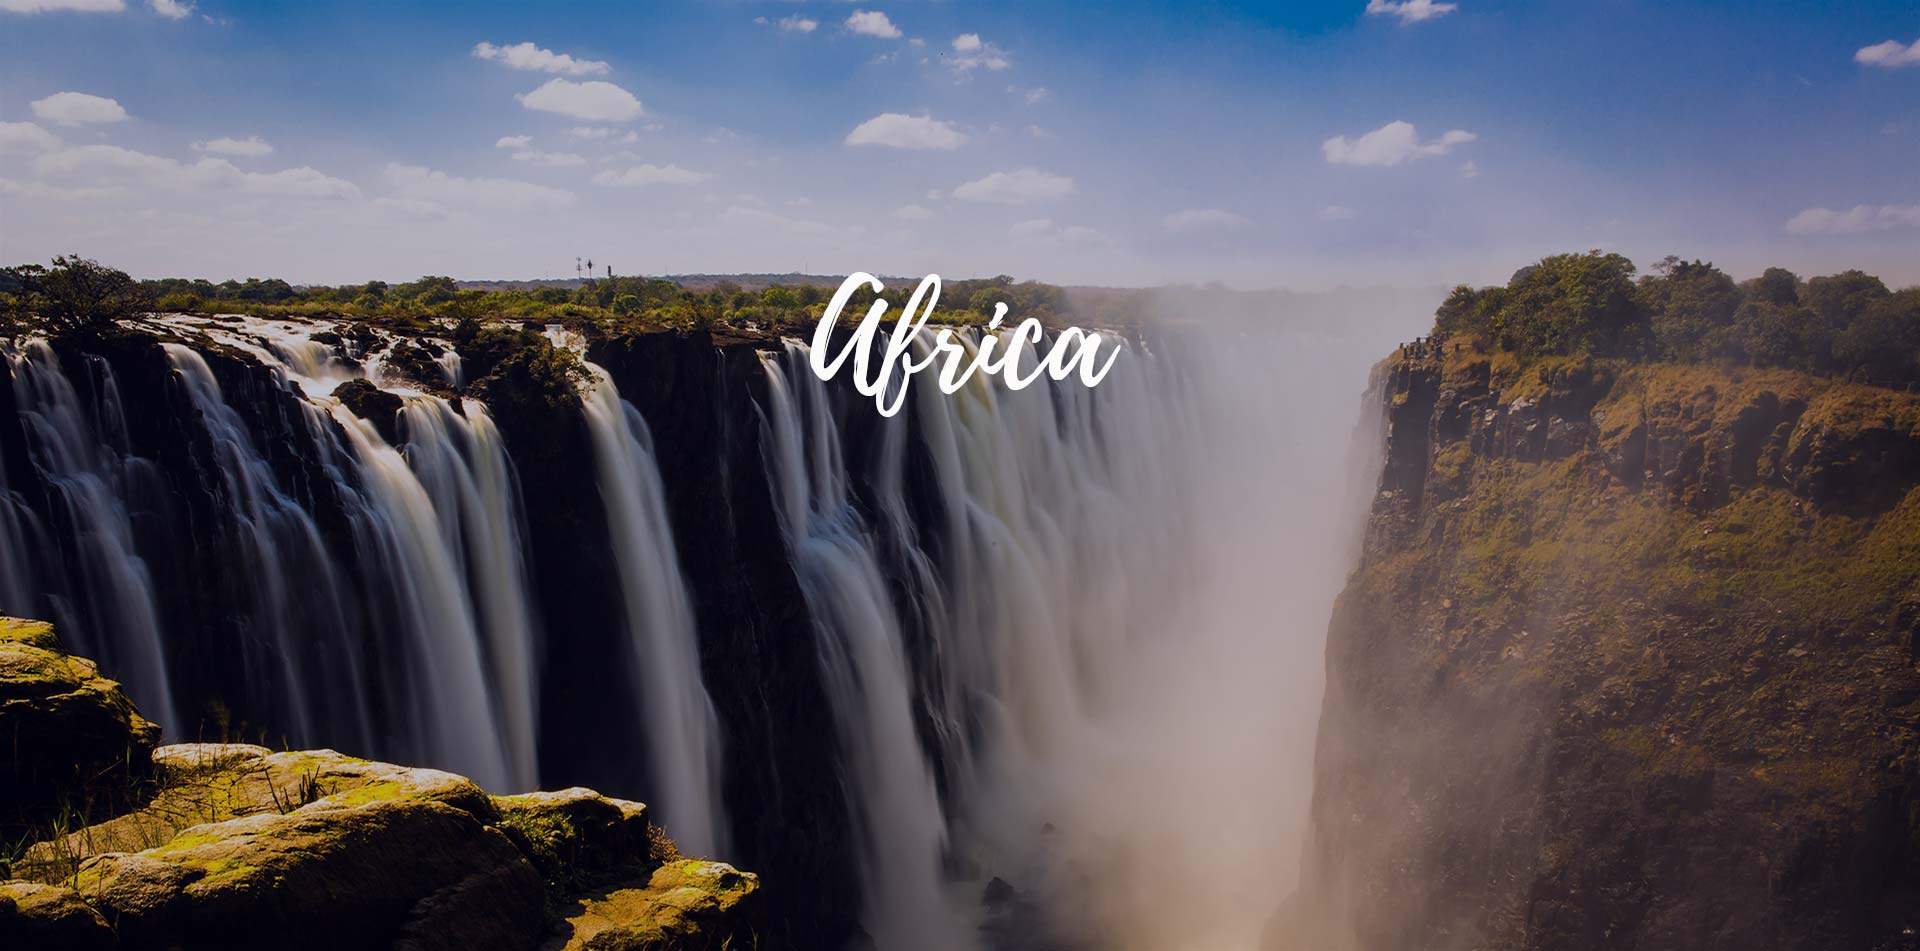 Africa Zambia scenic Zambezi River spectacular Victoria Falls rocky cliffs lush jungle - luxury vacation destinations